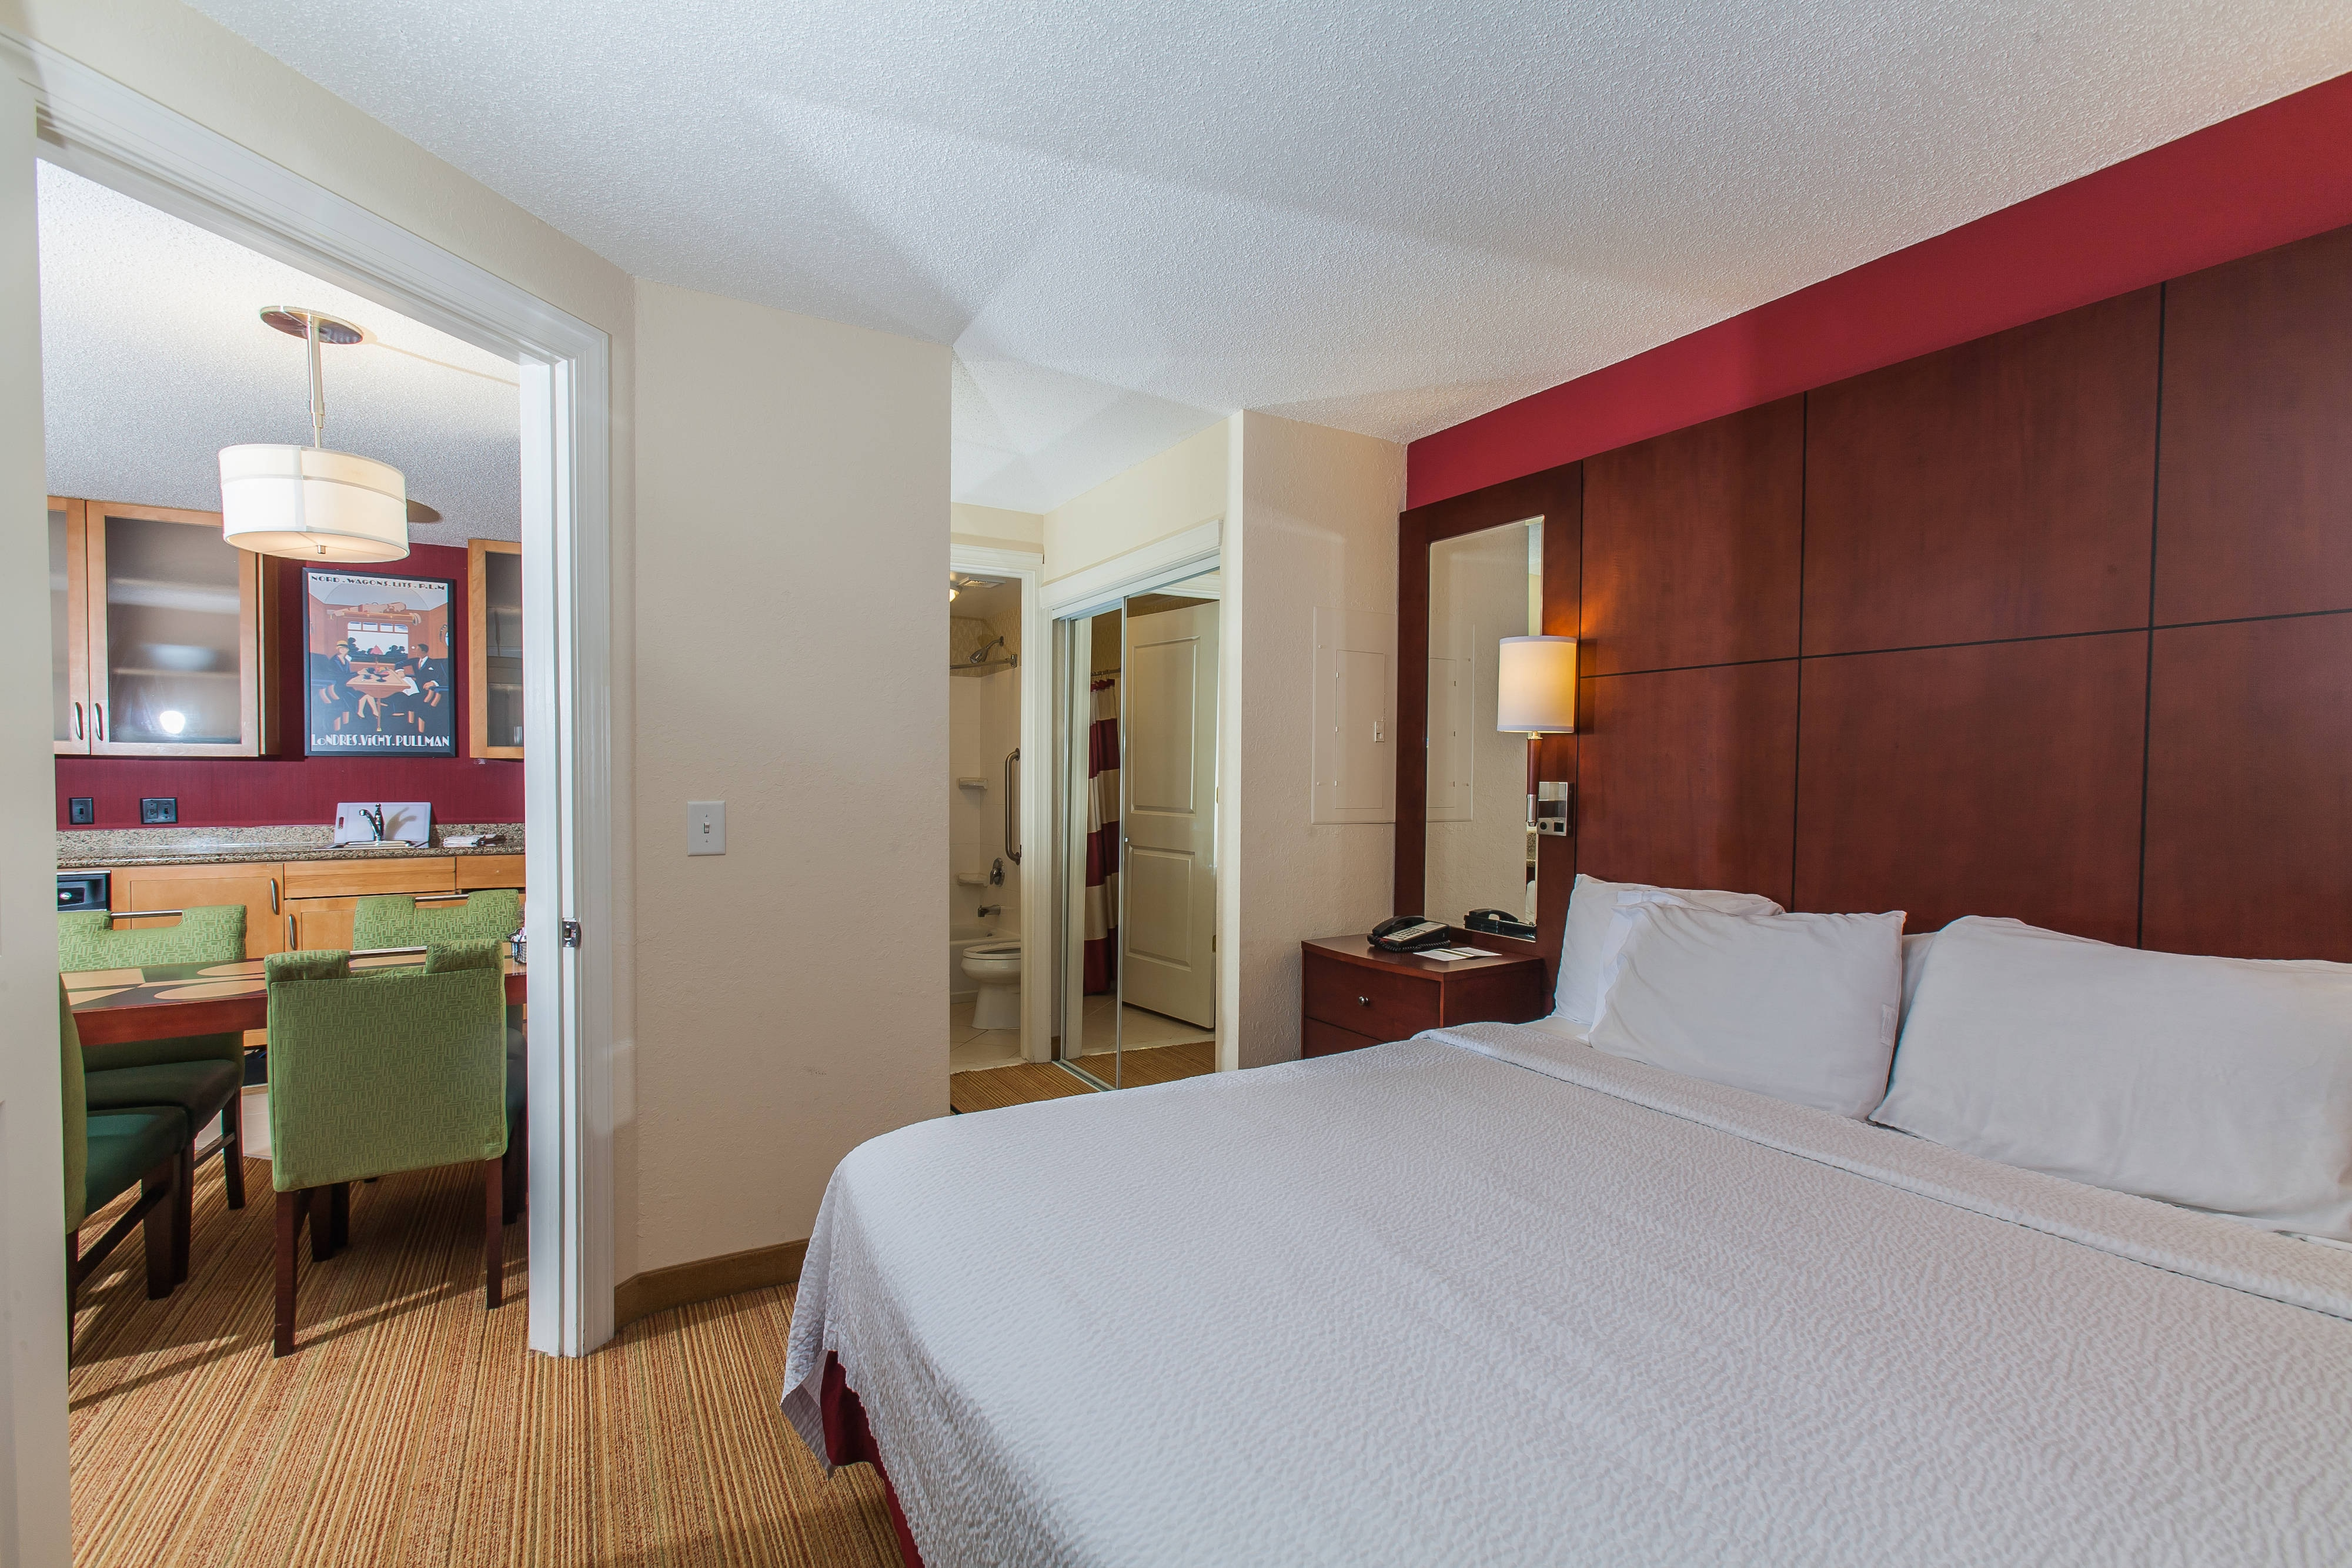 Residence Inn Marriott Florence